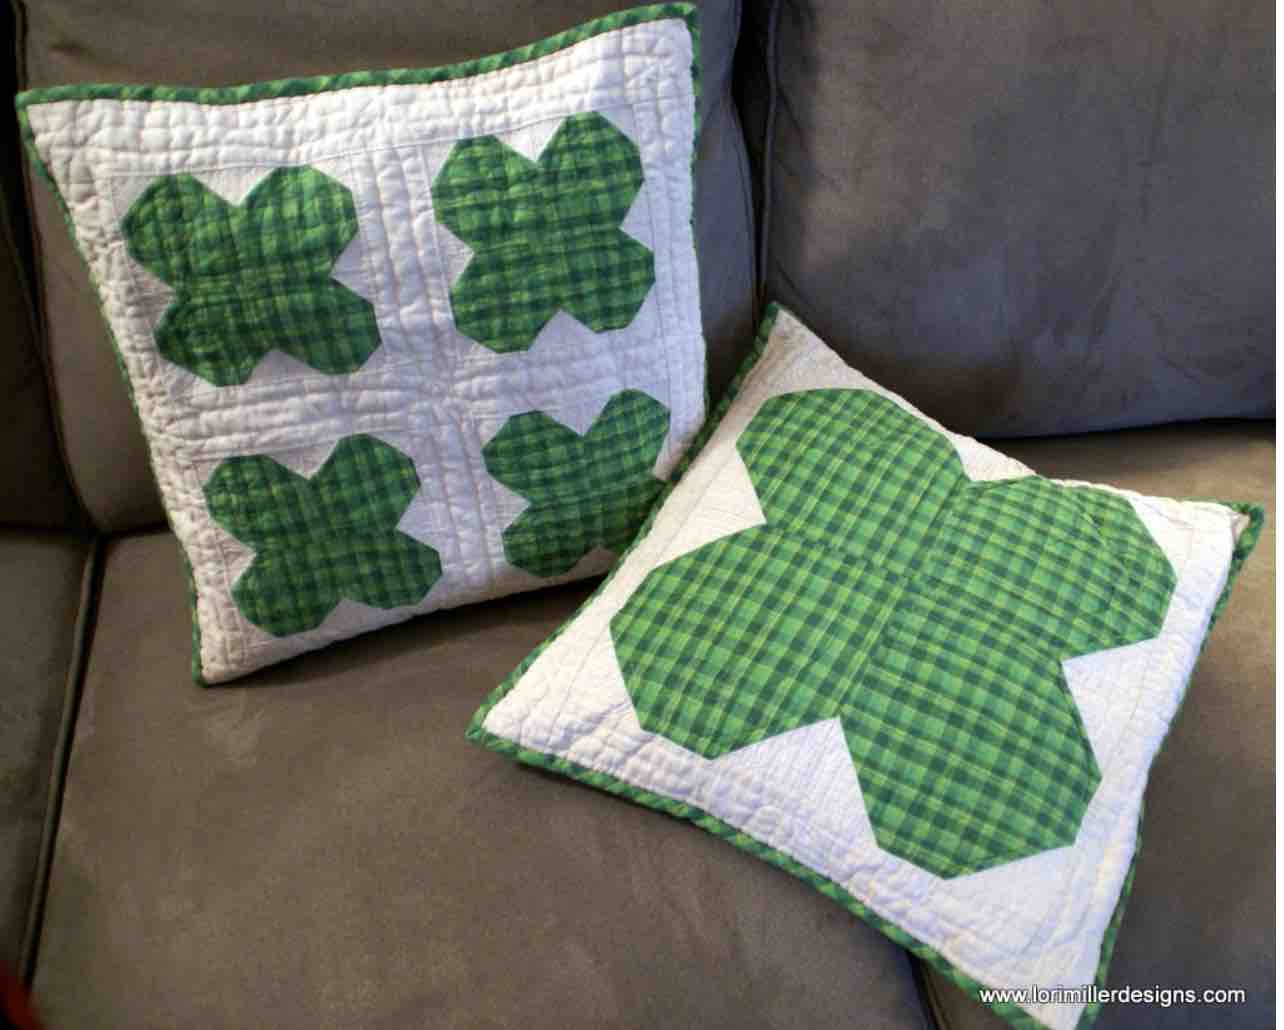 Two square pillows on a couch. One pillow has four quilted shamrocks and the other has one large quilted shamrock.